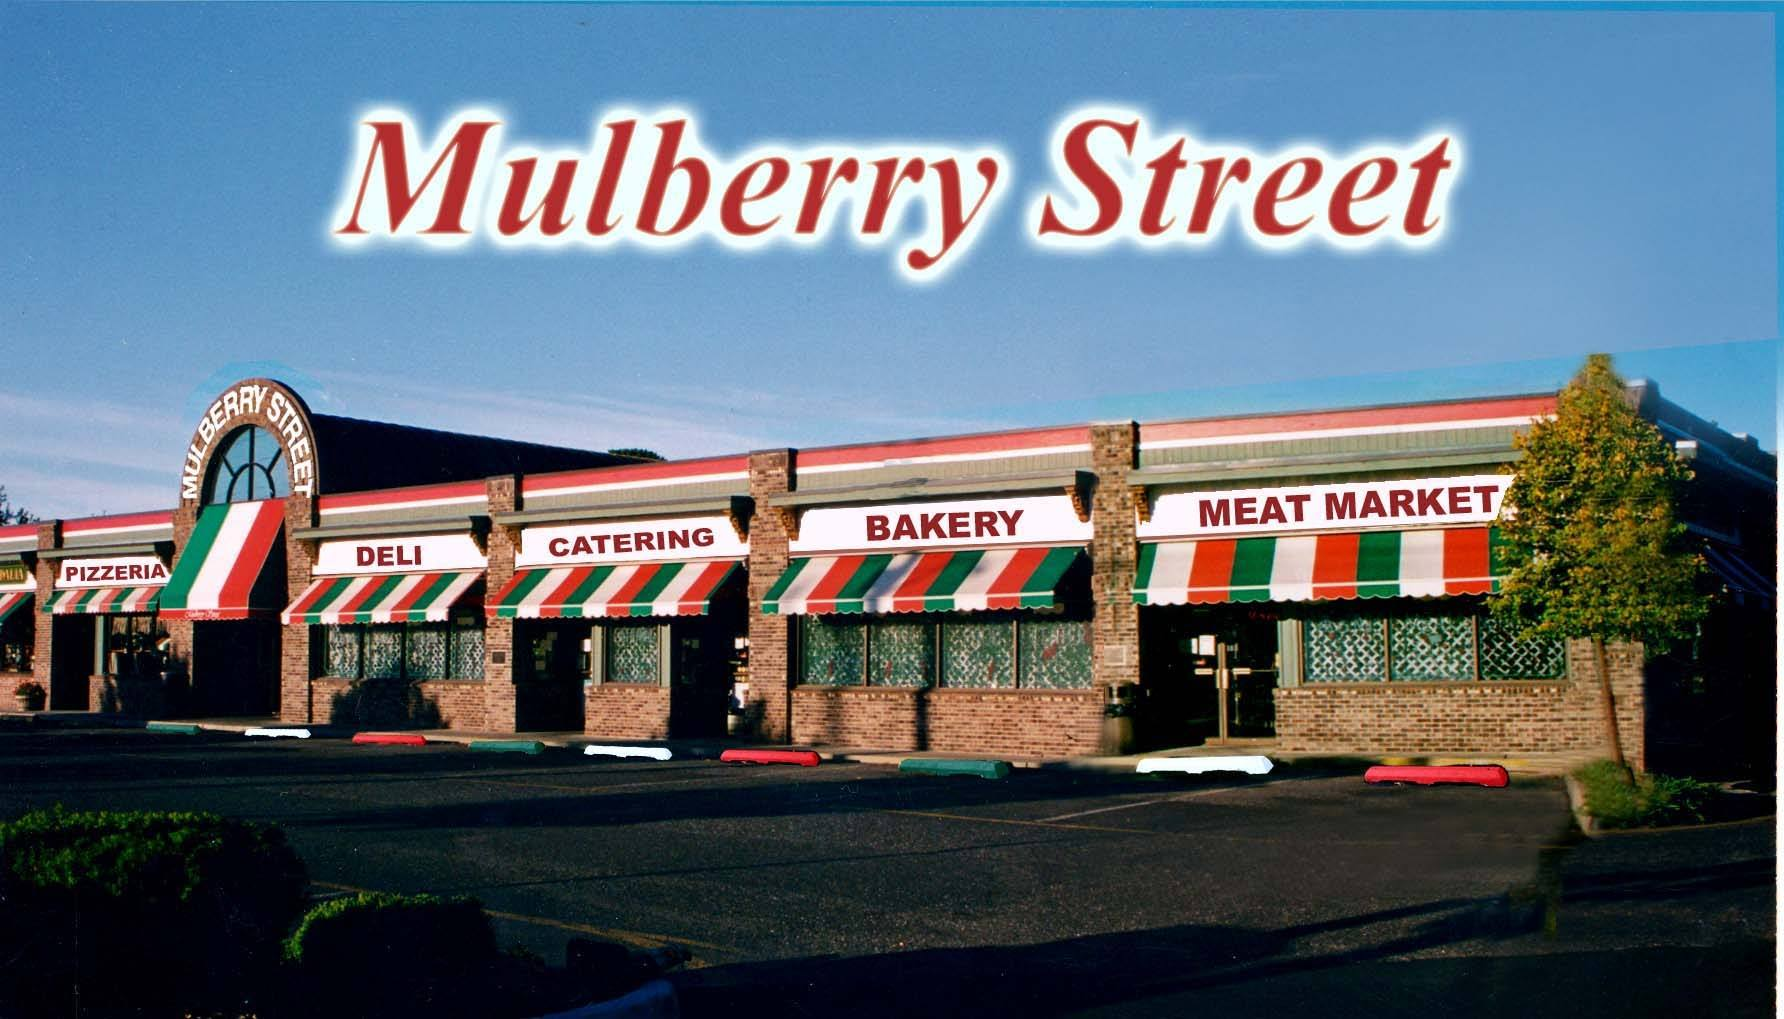 Emails from Mulberry Street